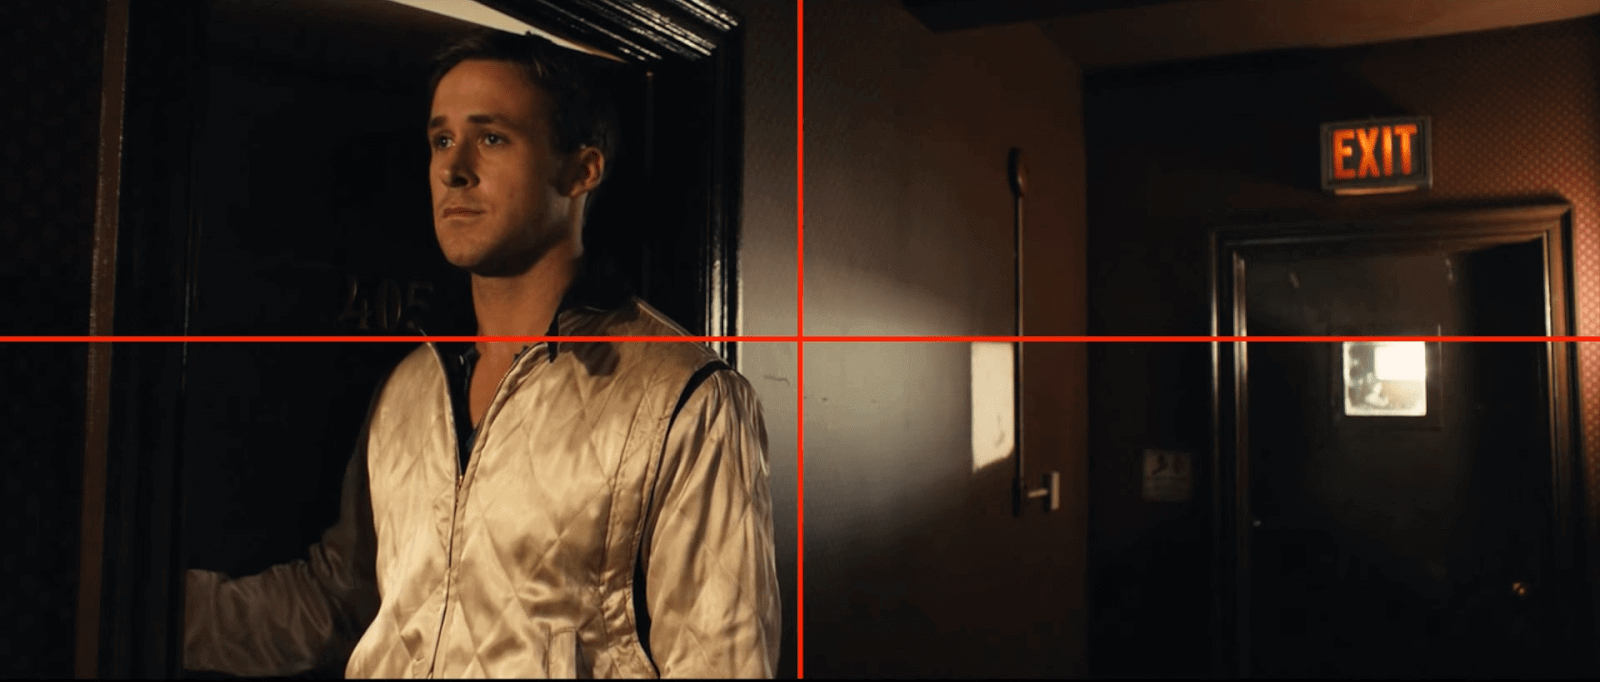 4 Rules of Composition That Will Make your Frames Pop - Drive-5